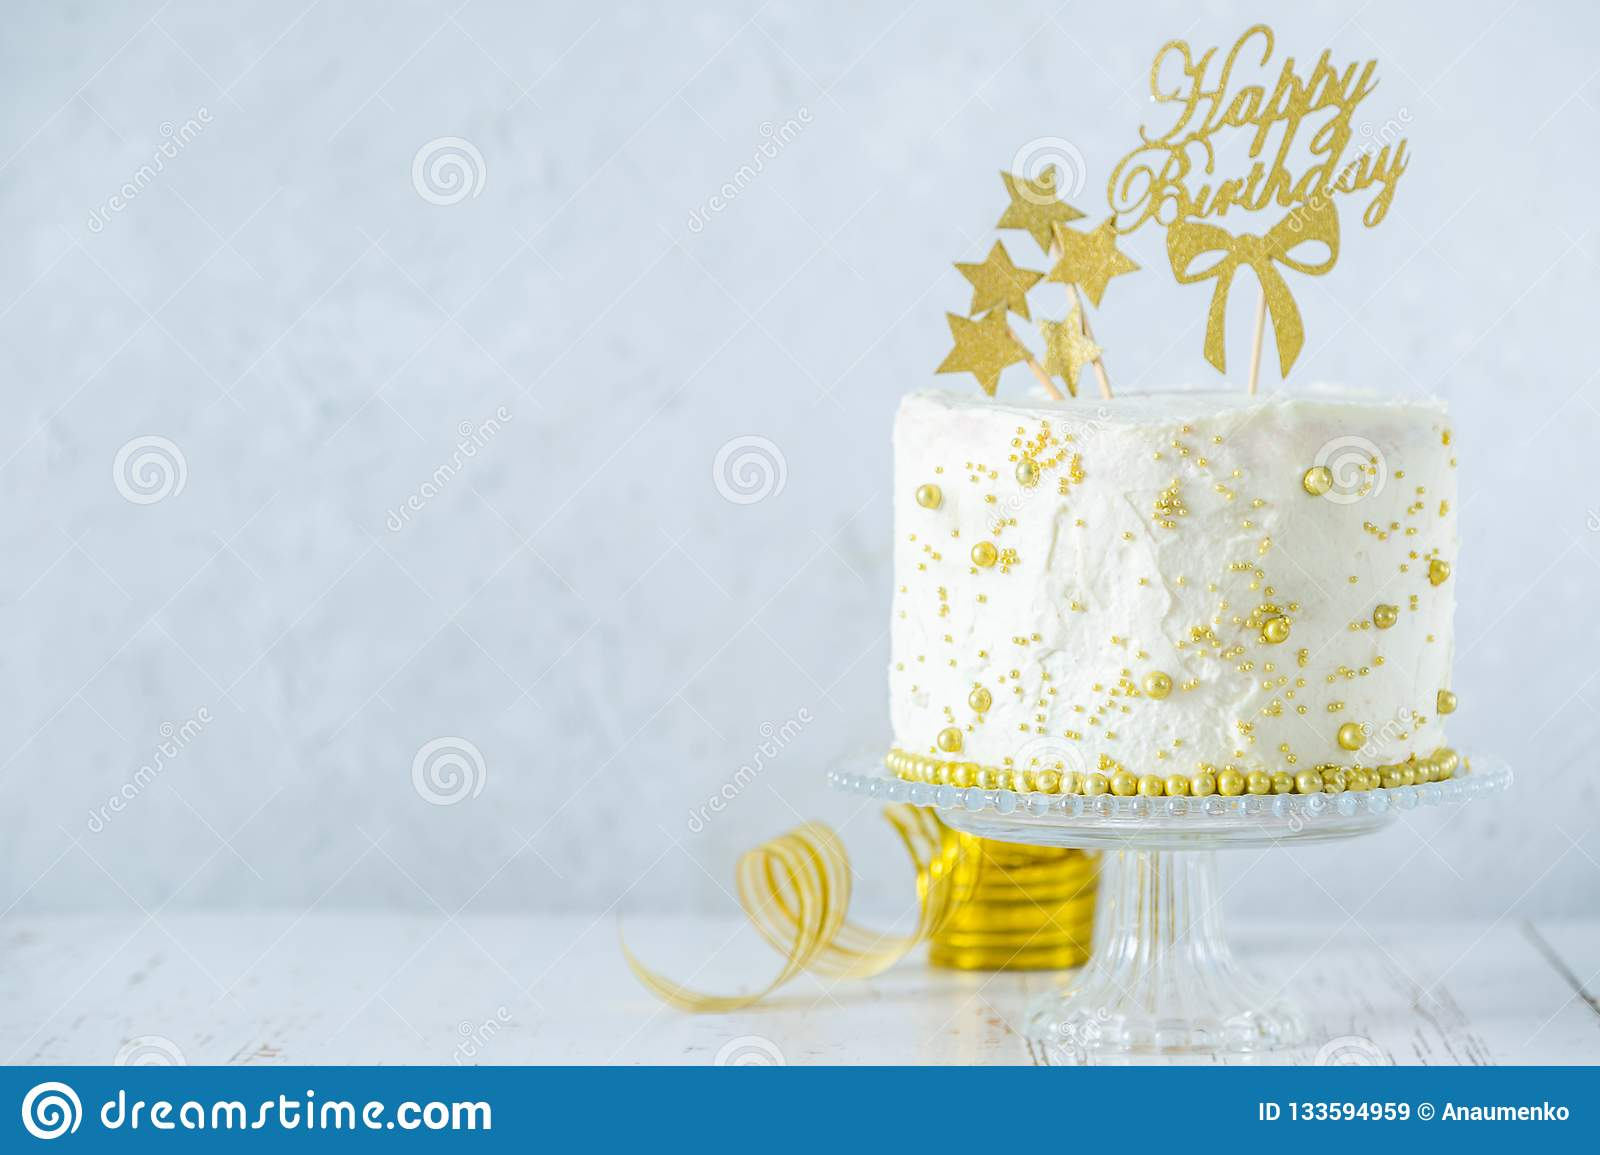 Astonishing Golden Birthday Concept Cake Presents Decorations Stock Image Funny Birthday Cards Online Alyptdamsfinfo